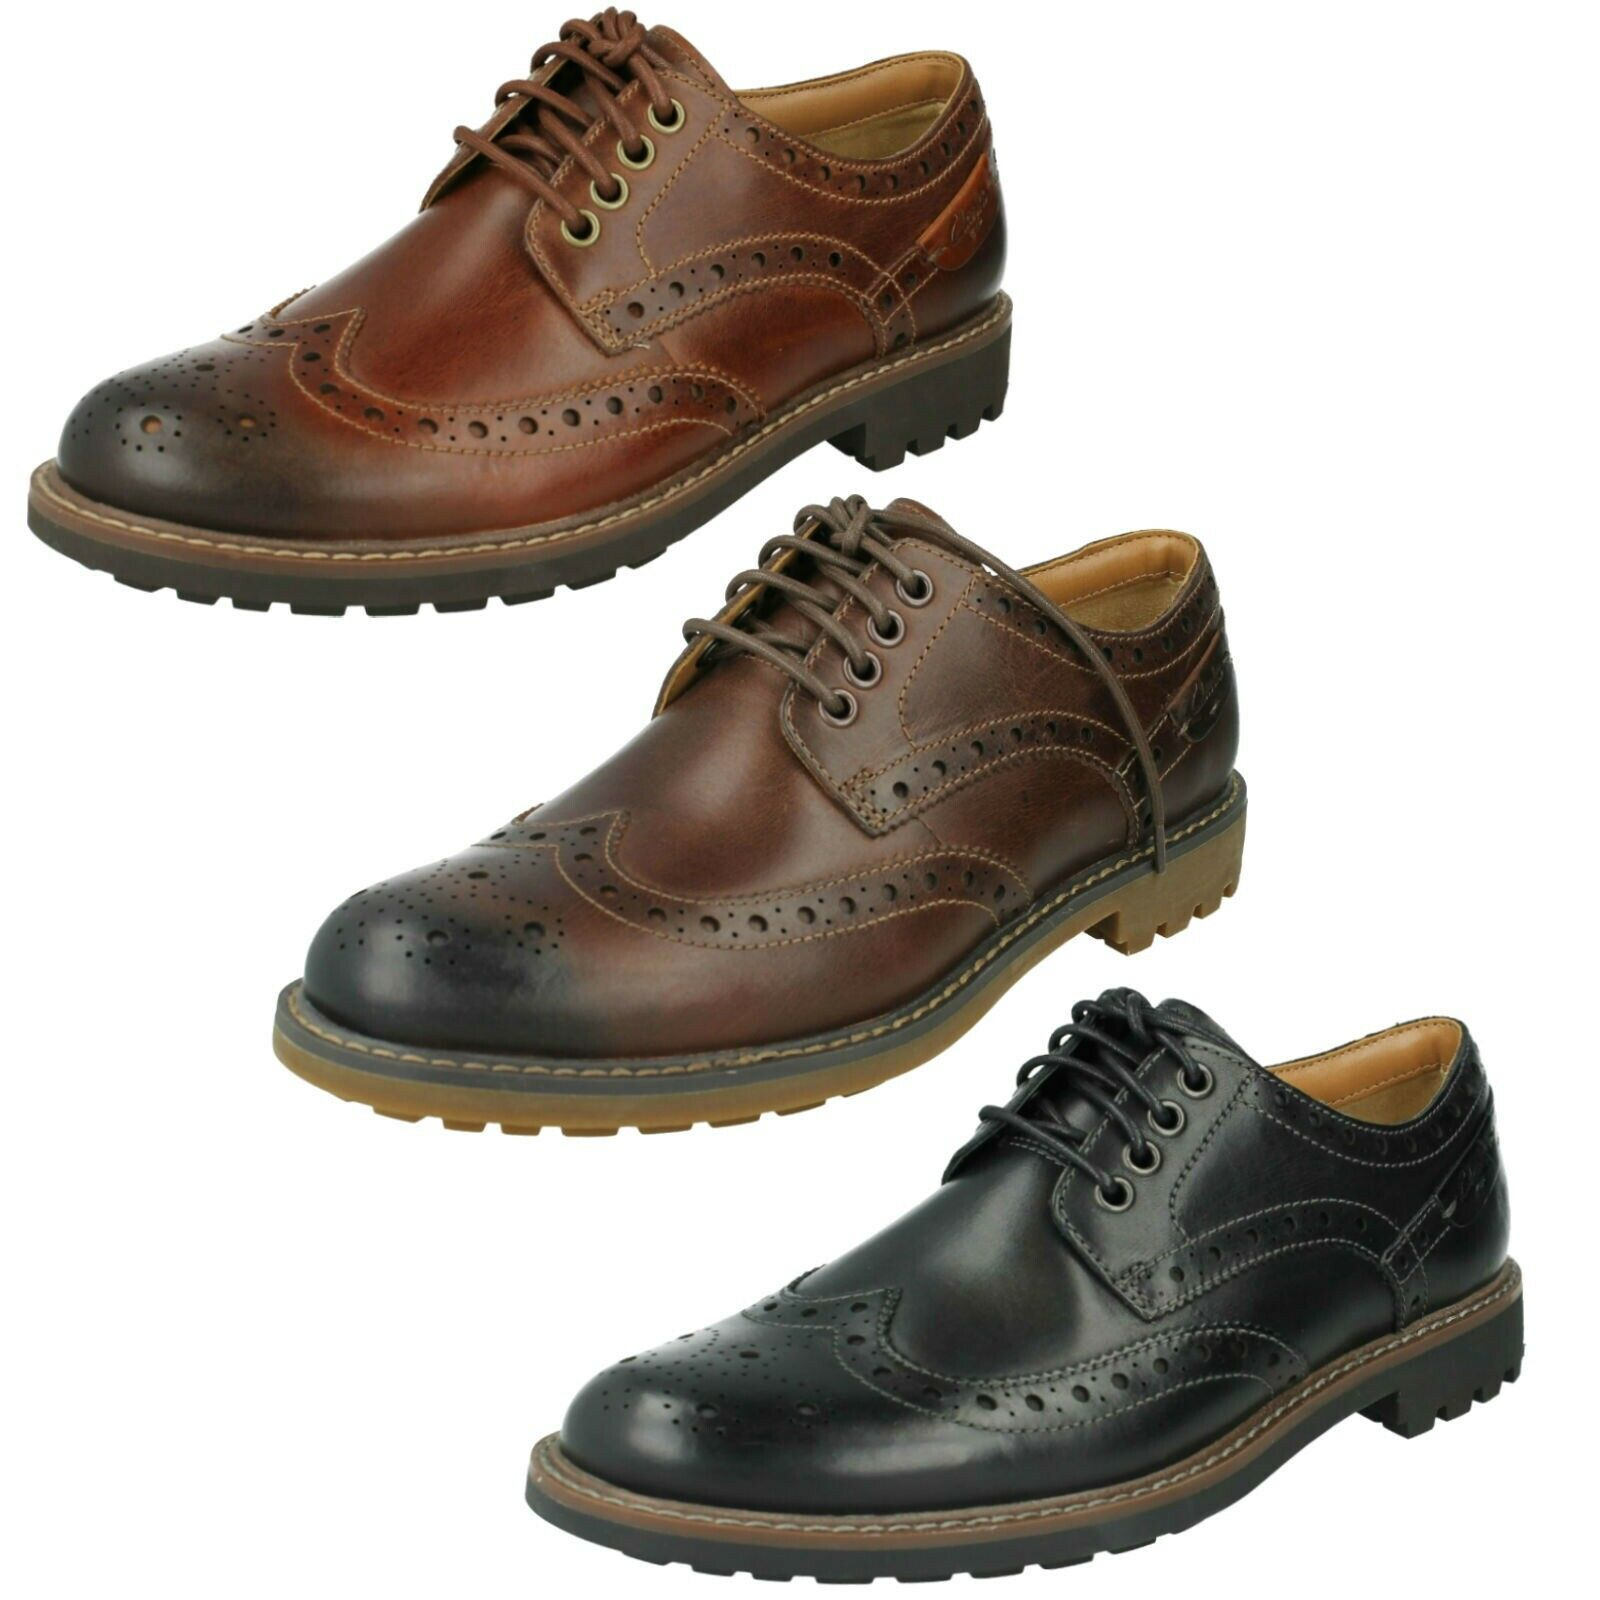 Mens Clarks Leather new shoes Lace-Up Casual Formal SHOE MONTACUTE WING